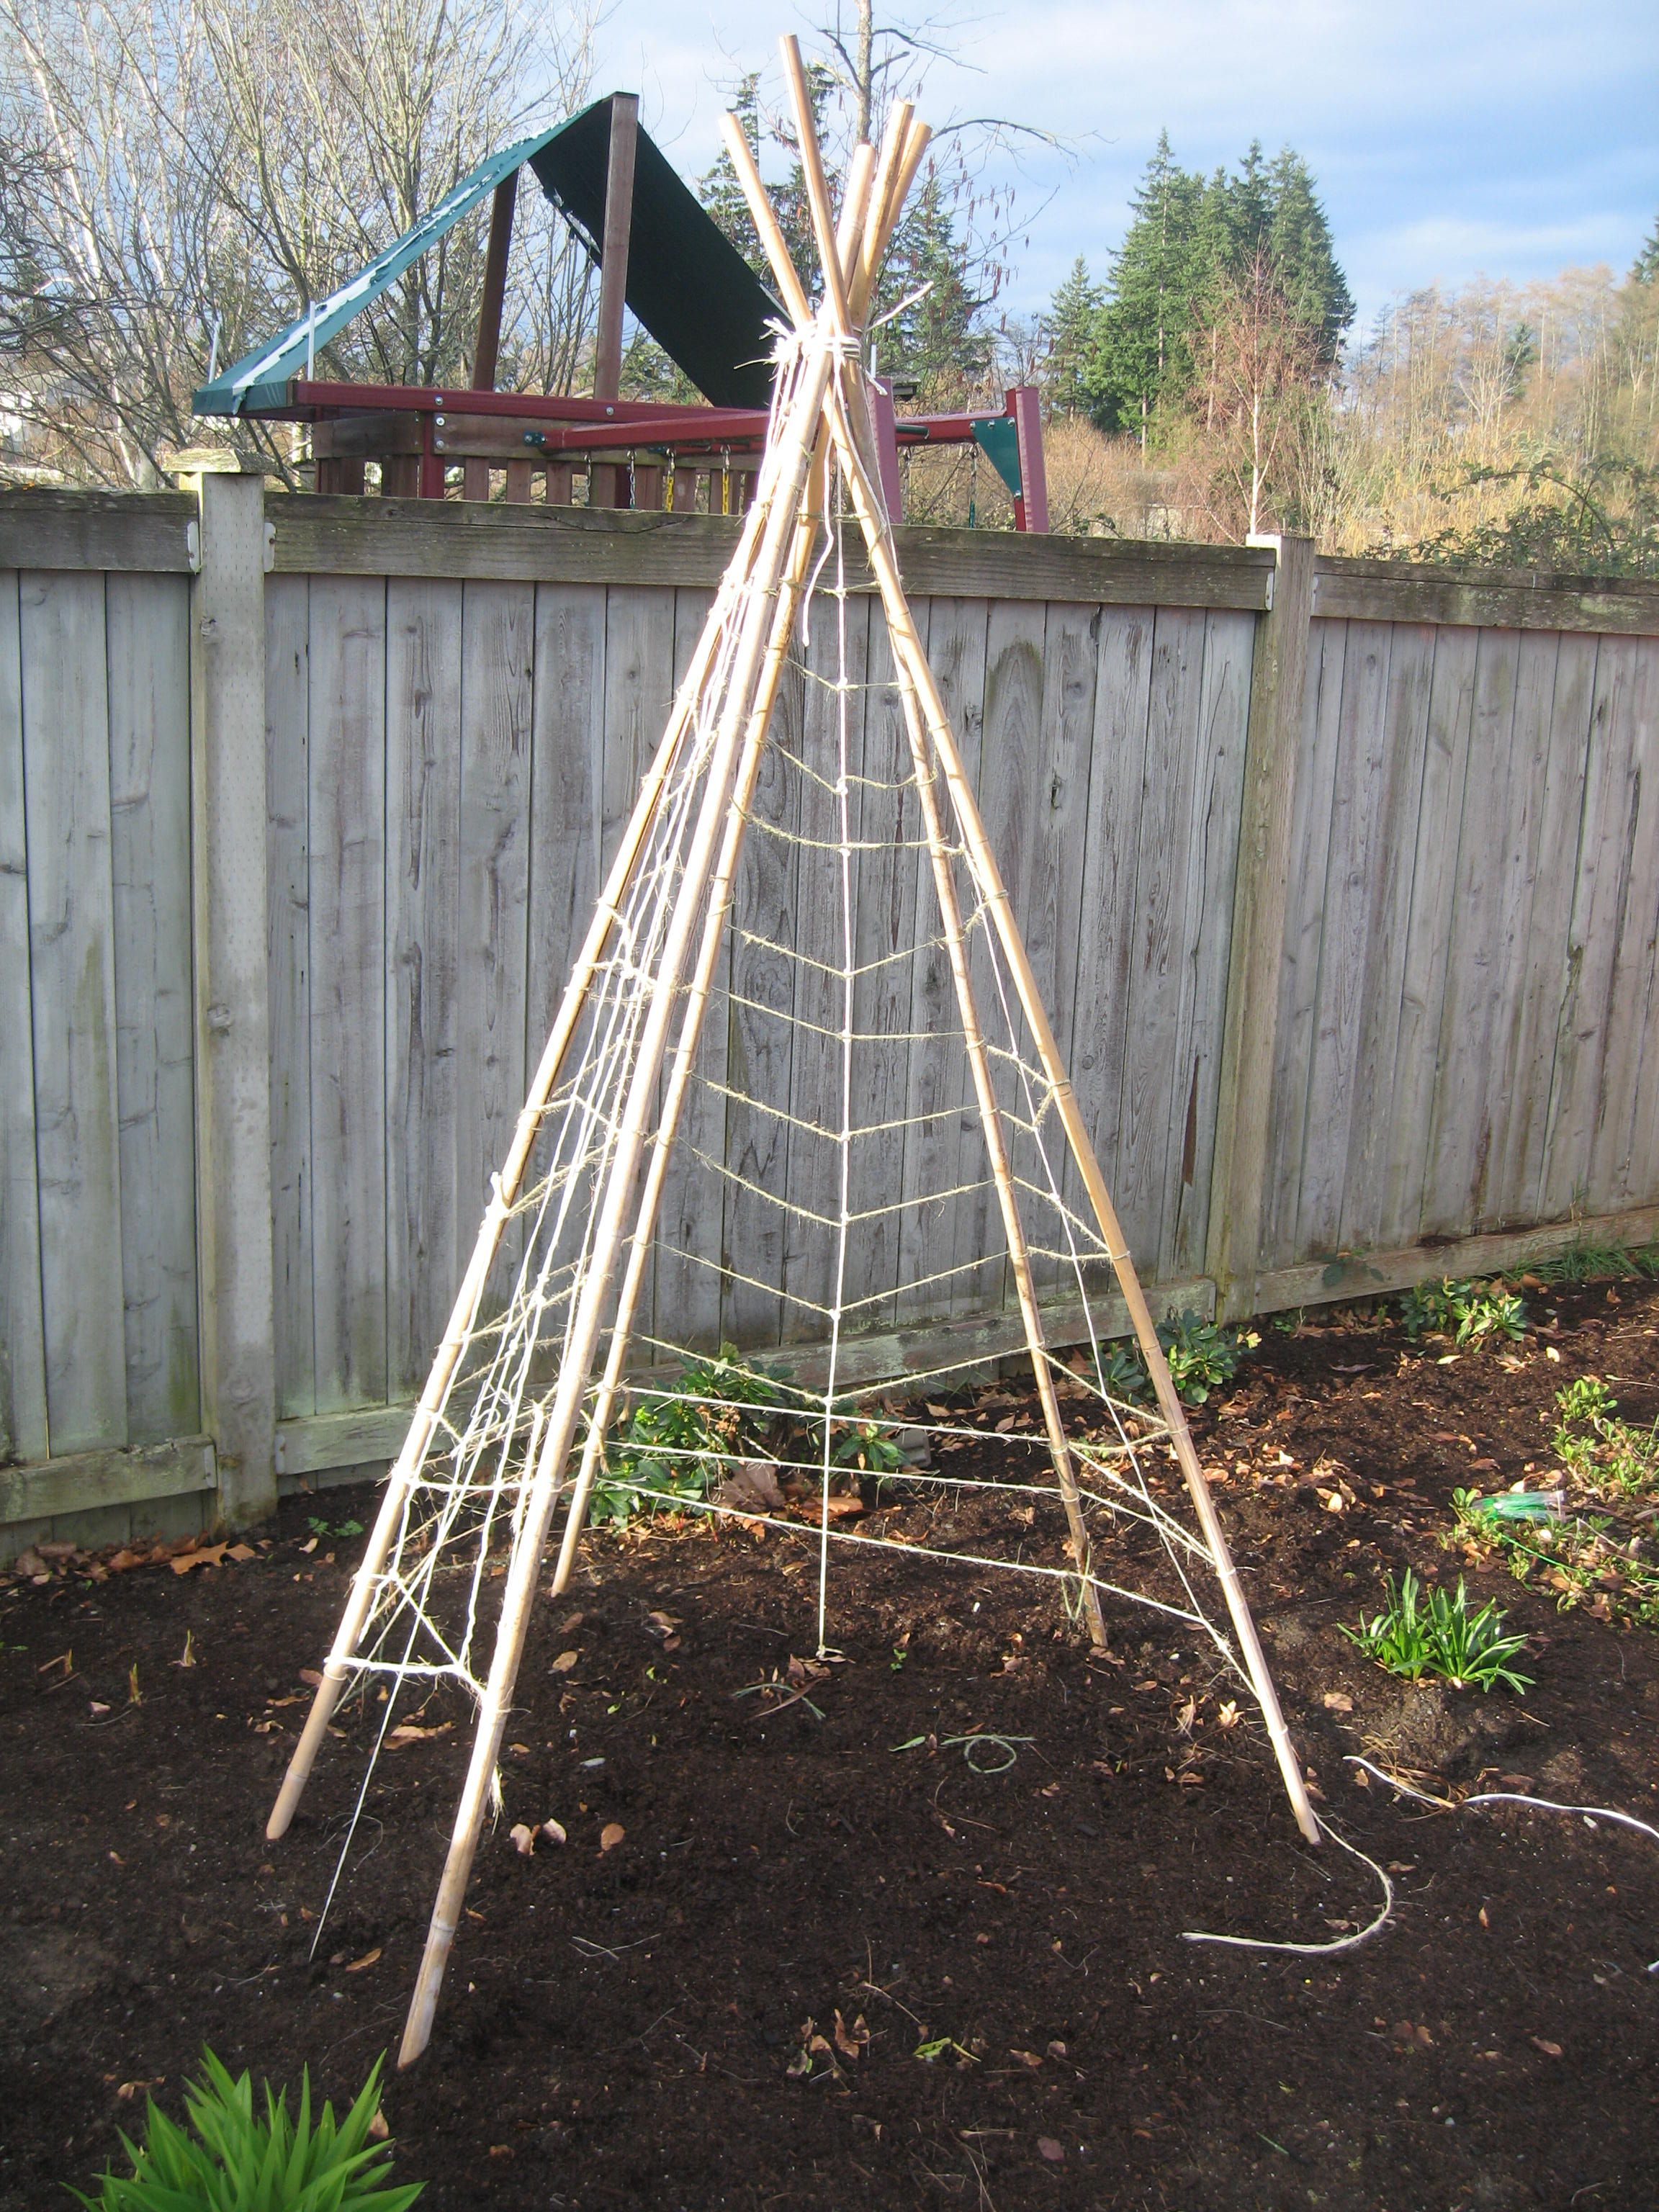 Green Bean Trellis Ideas Part - 34: Made By Growing Green Beans. We Did This One Year And The Green Beans Fell  Into The Center Of The T. The Kids Loved It!